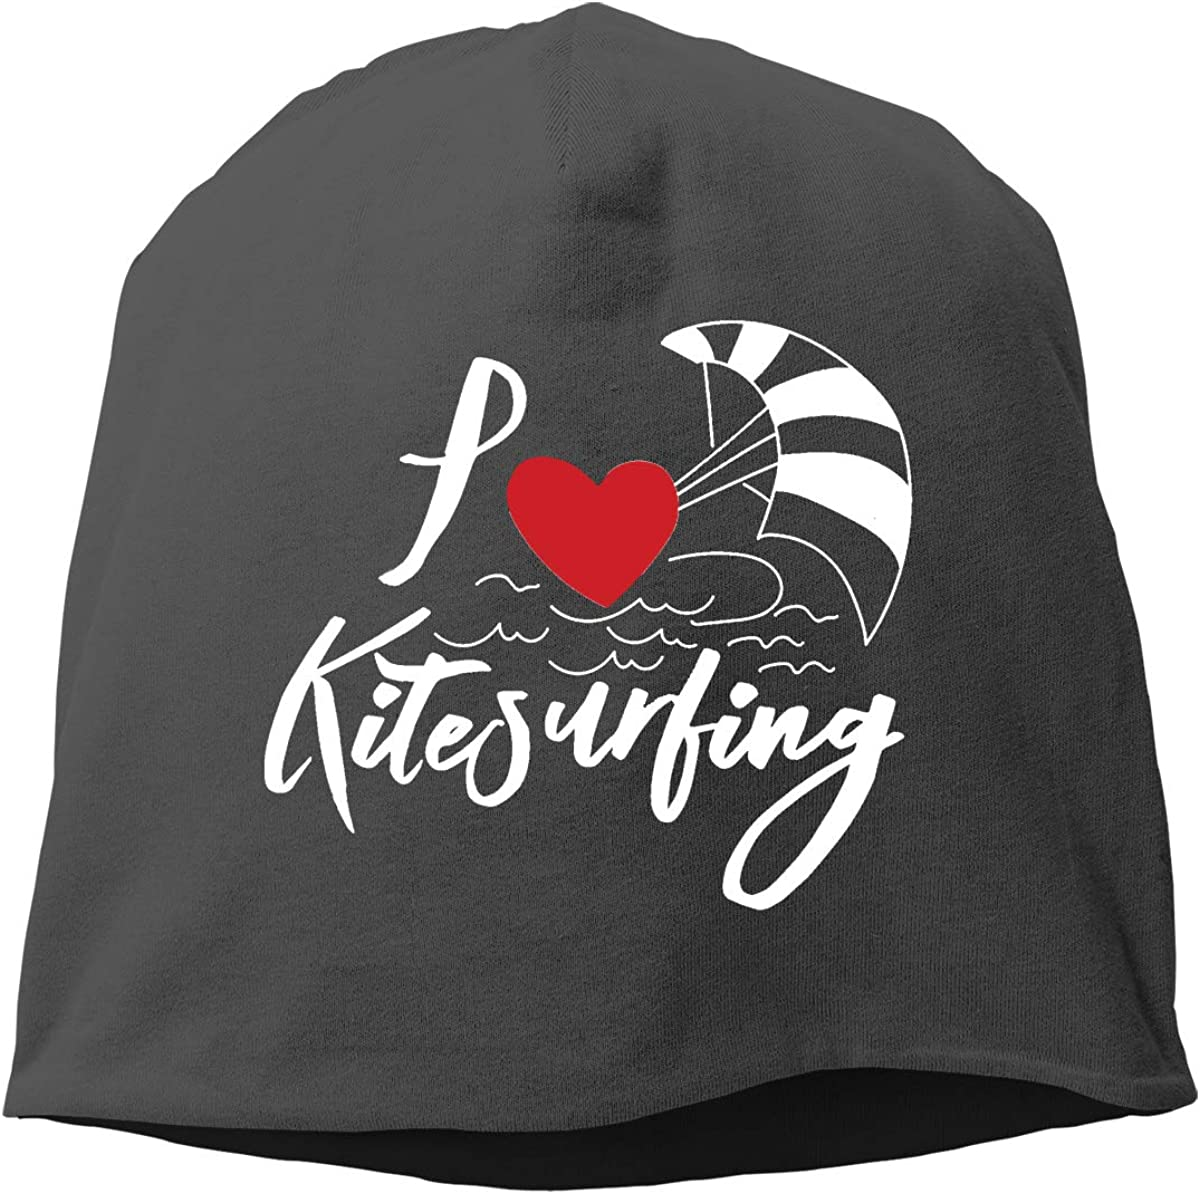 Love Kite Surfing Unisex Knitted Hat Beanie Hat Warm Hats Skull Cap Beanie Hat